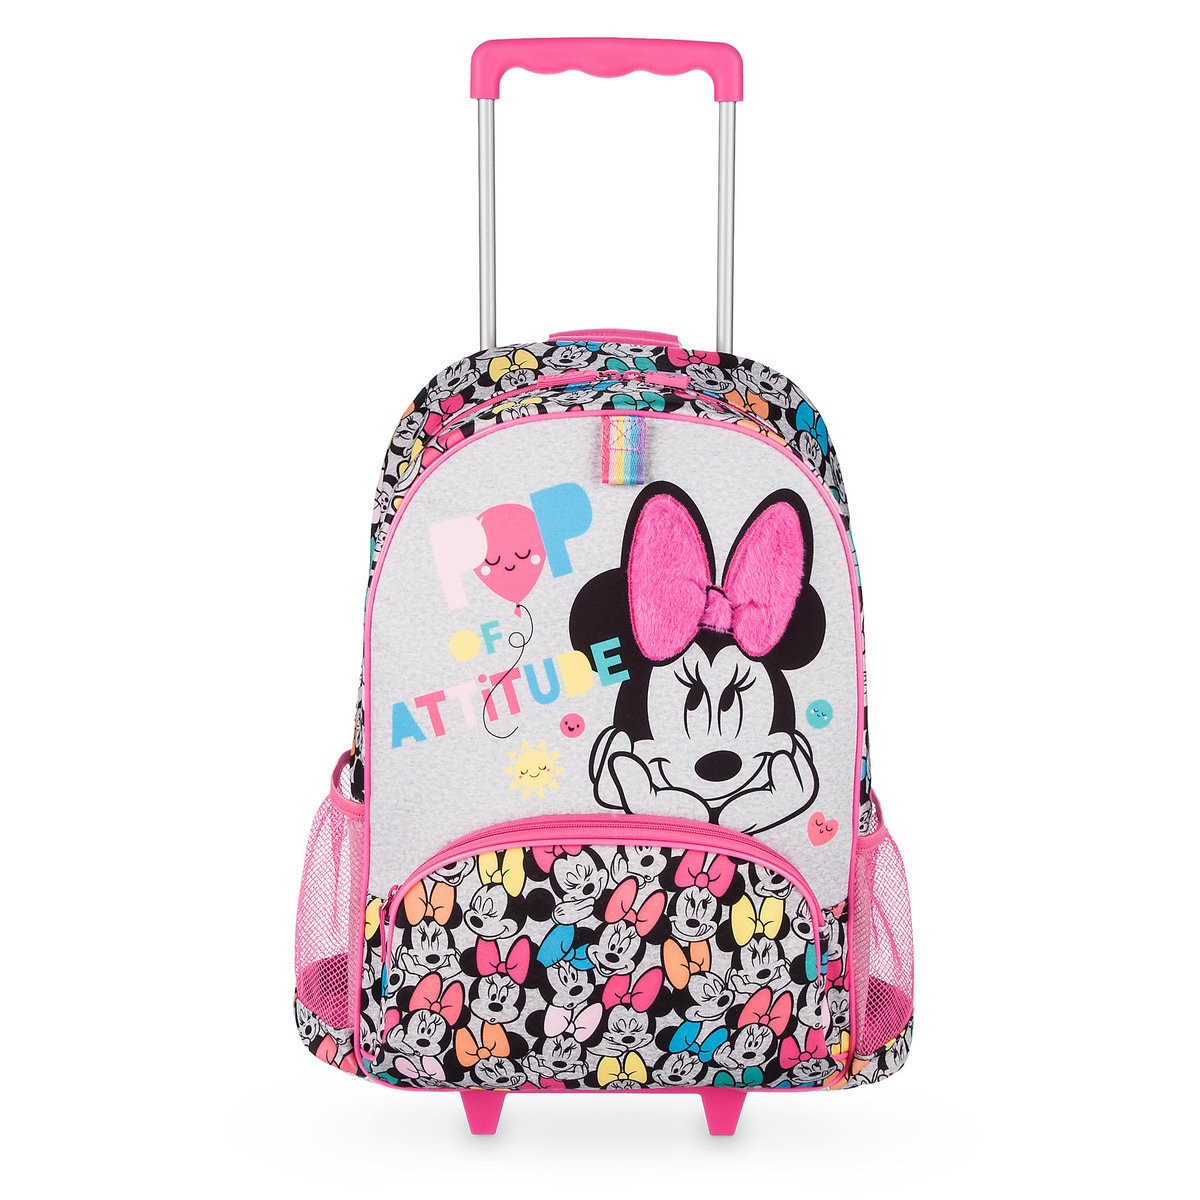 cdcd4b7f23 Product Image of Minnie Mouse Rolling Backpack - Personalizable   1